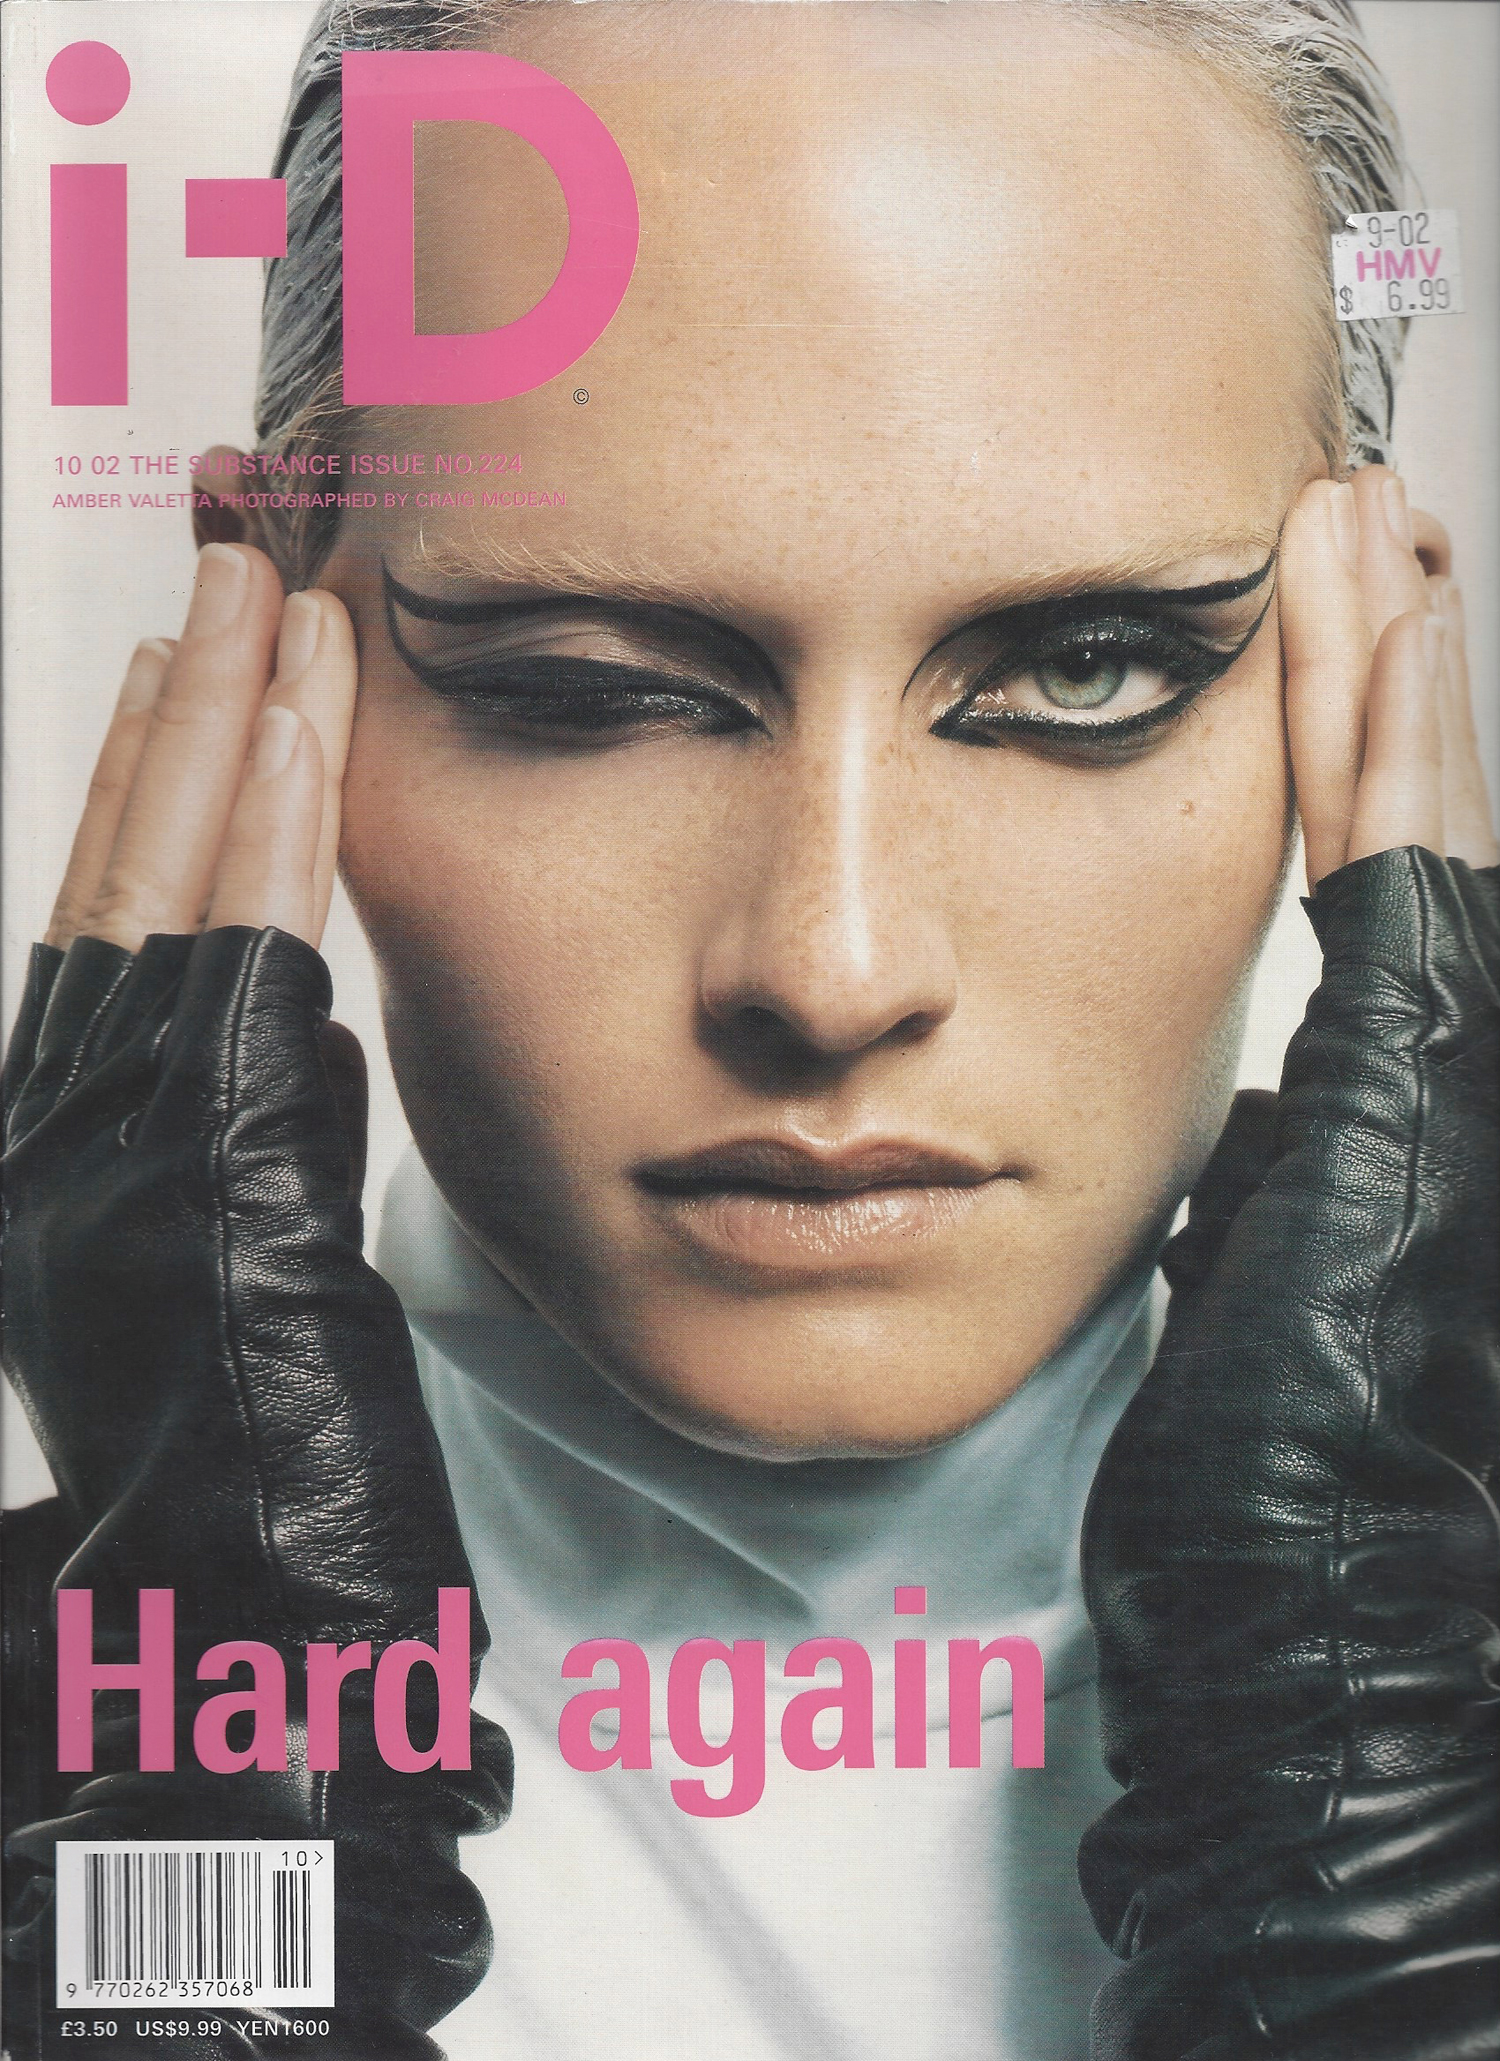 id-magazine-2002-cover